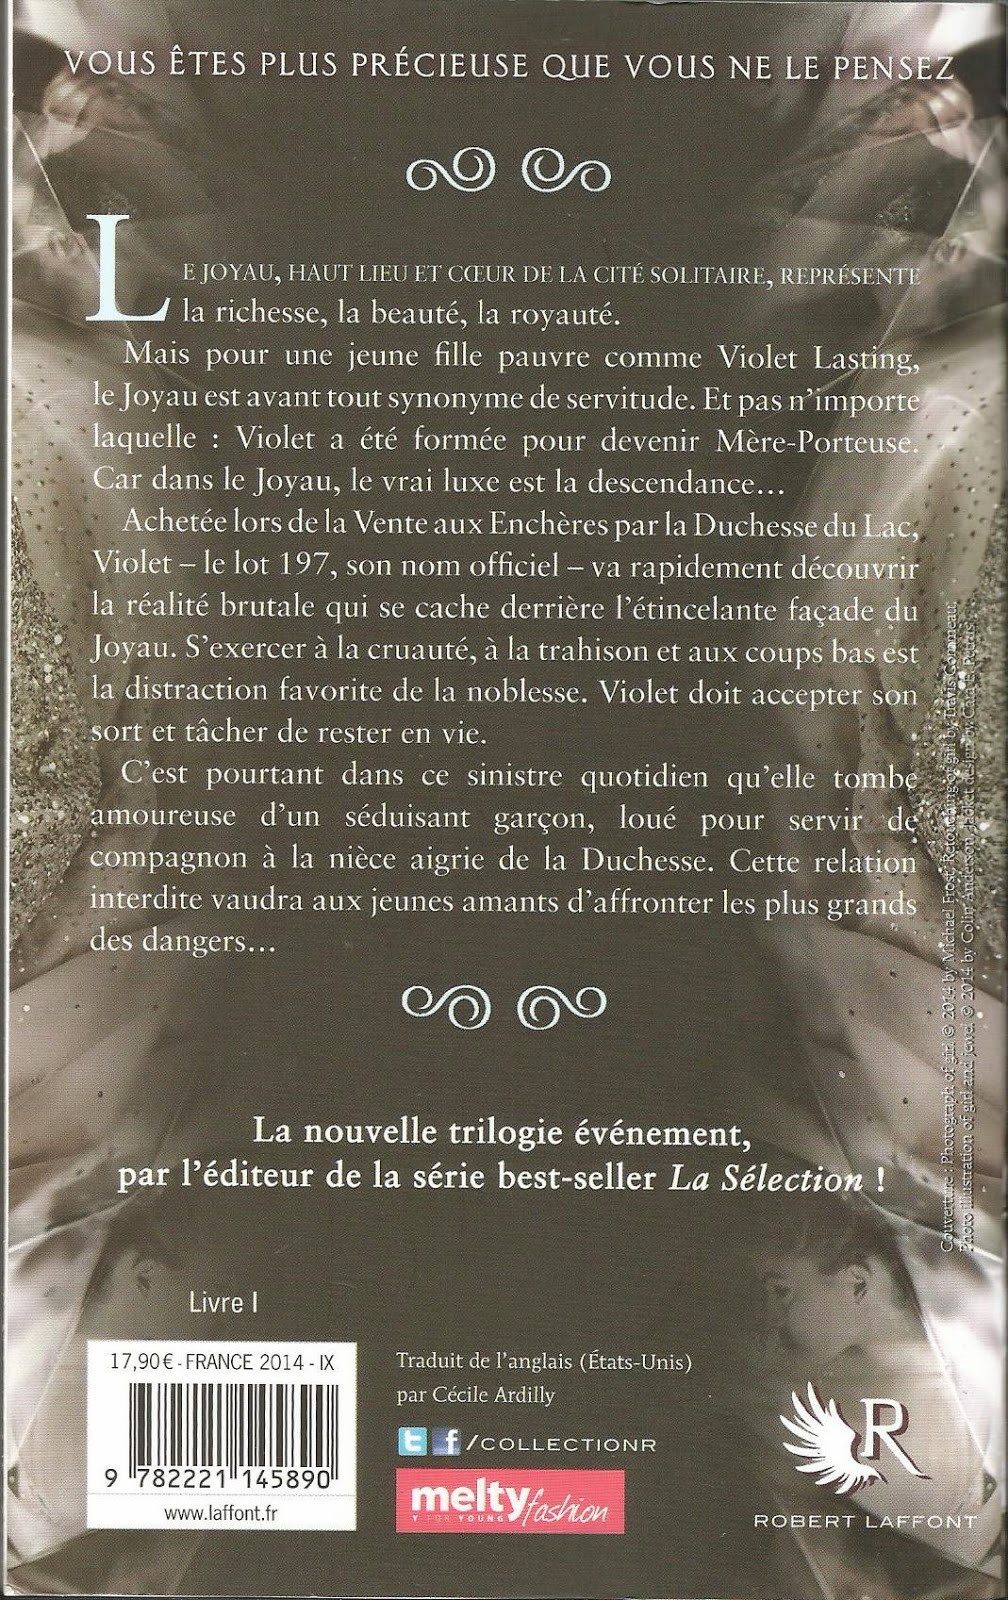 LE JOYAU (The Jewel) Amy Ewing back cover quatrième de couverture résumé synopsis